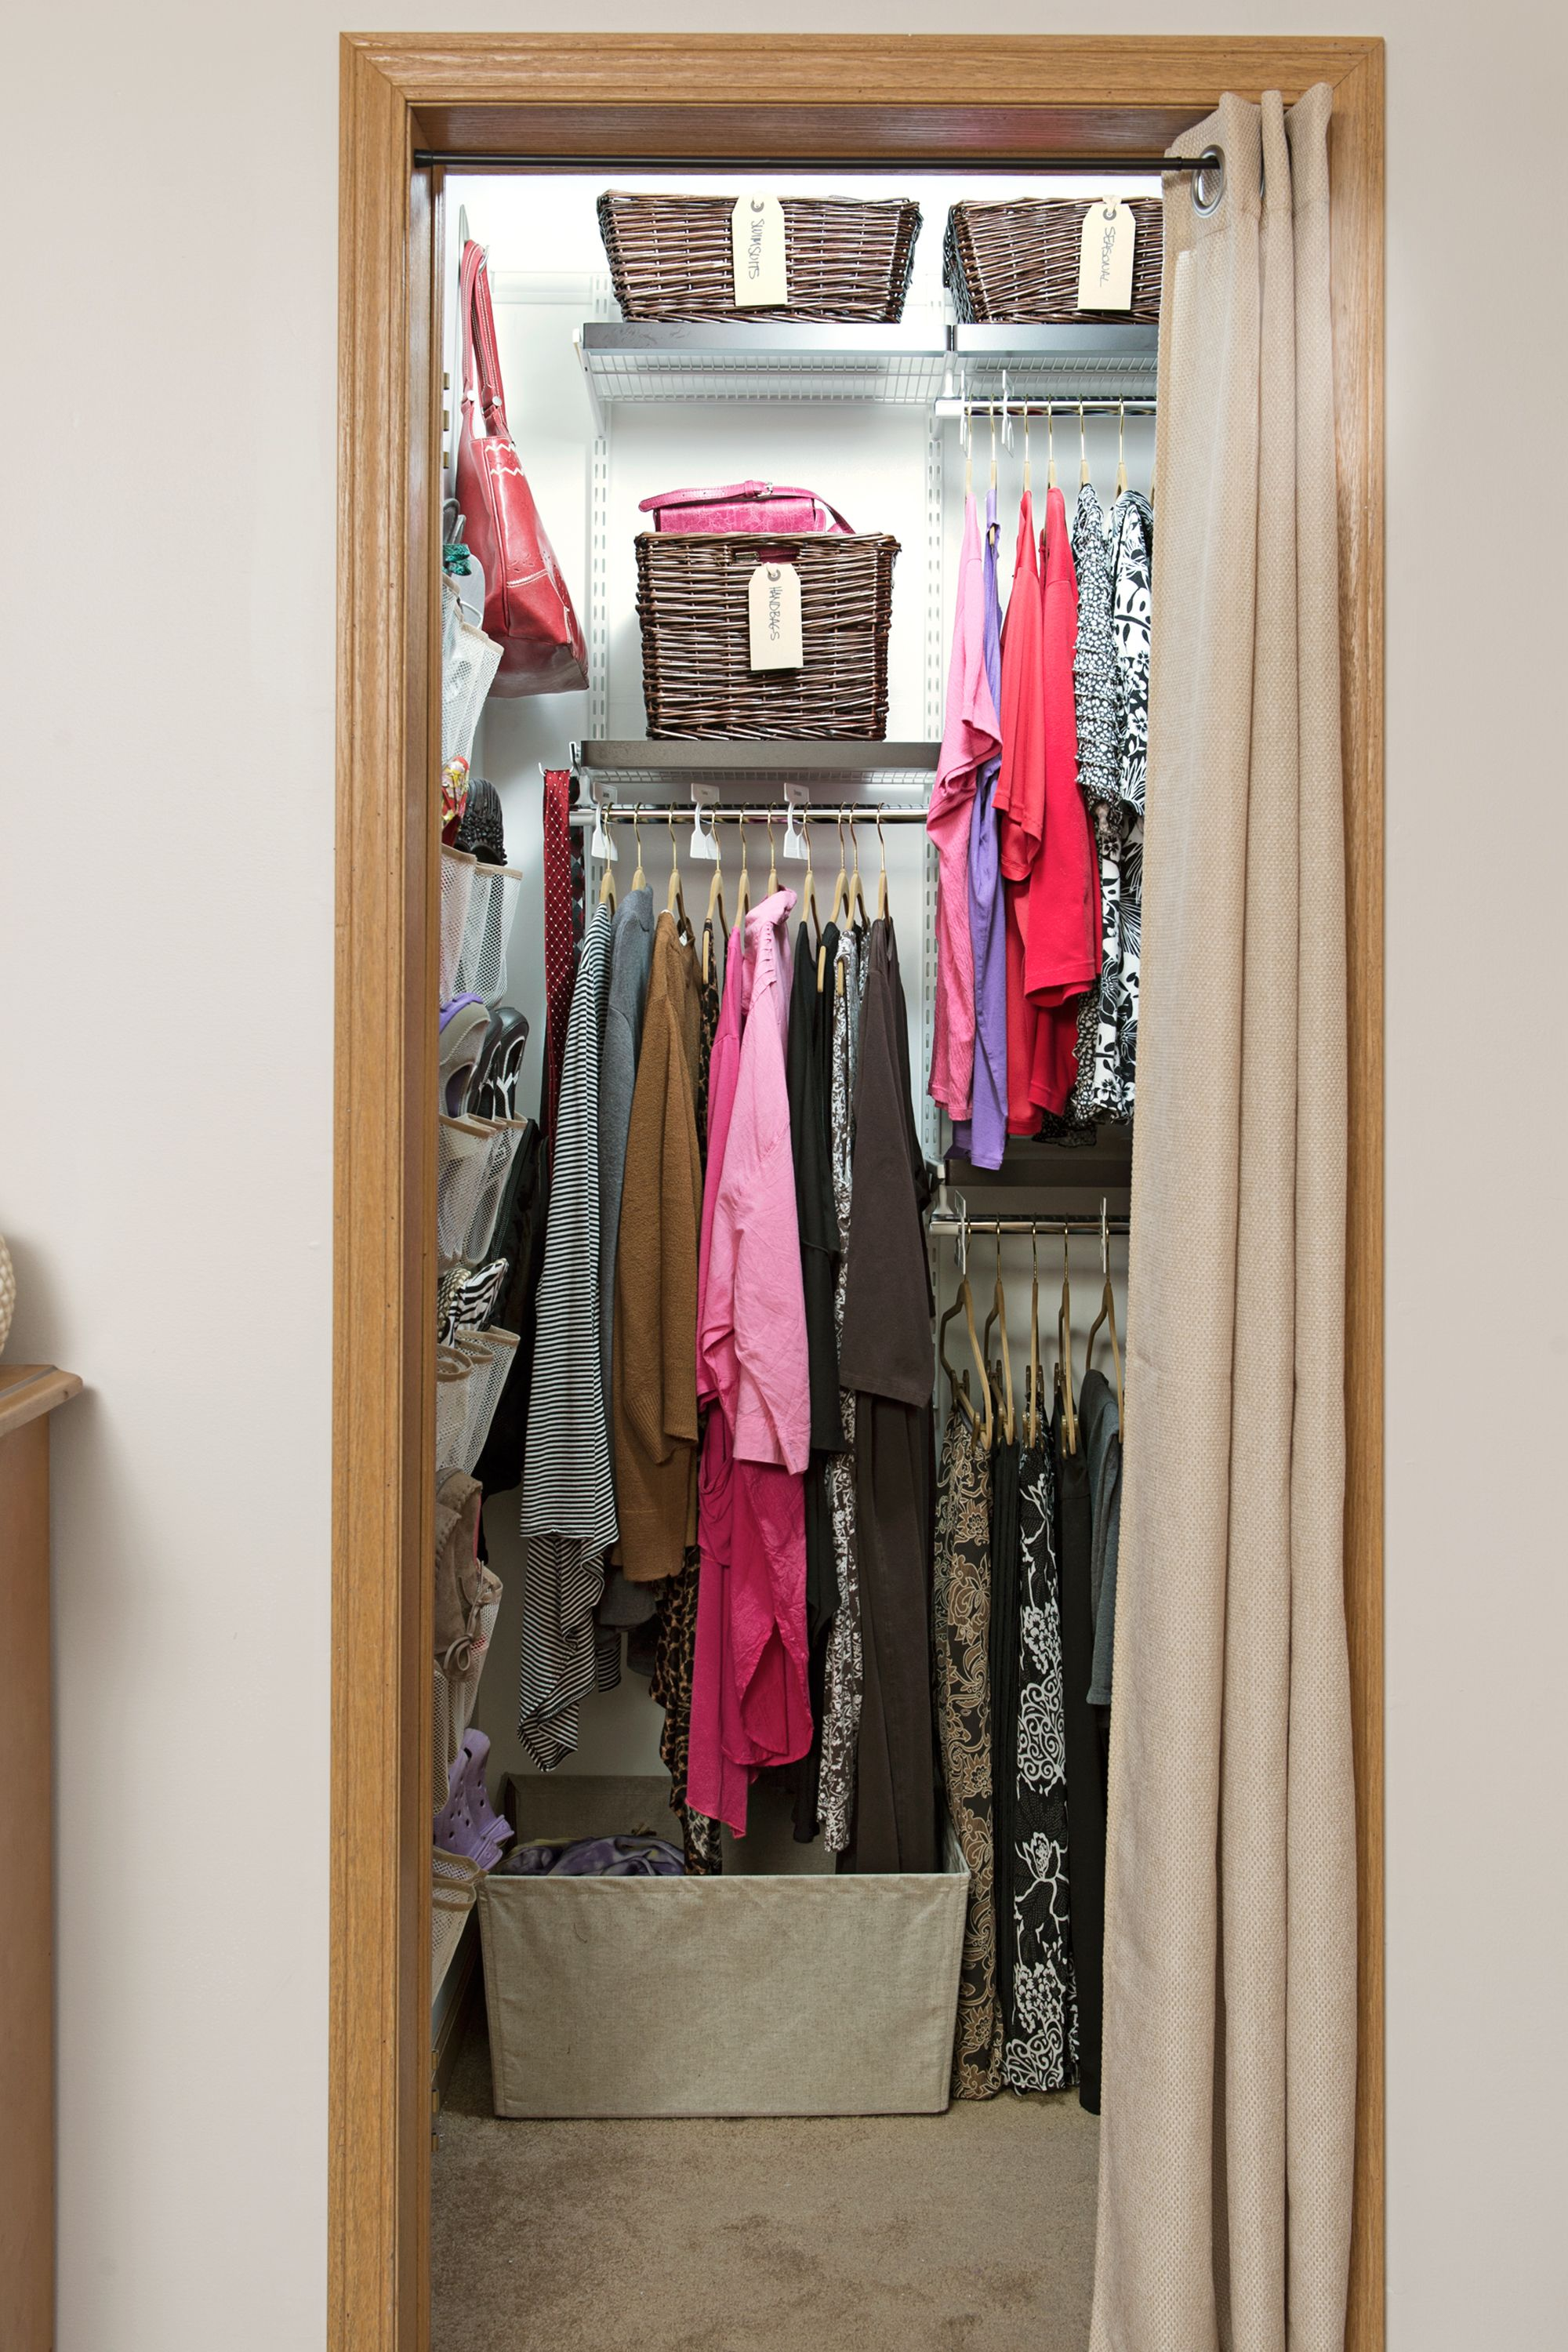 organization storage your cheap to ideas com womansday organize closet tips best how wardrobe home cleaning organizing